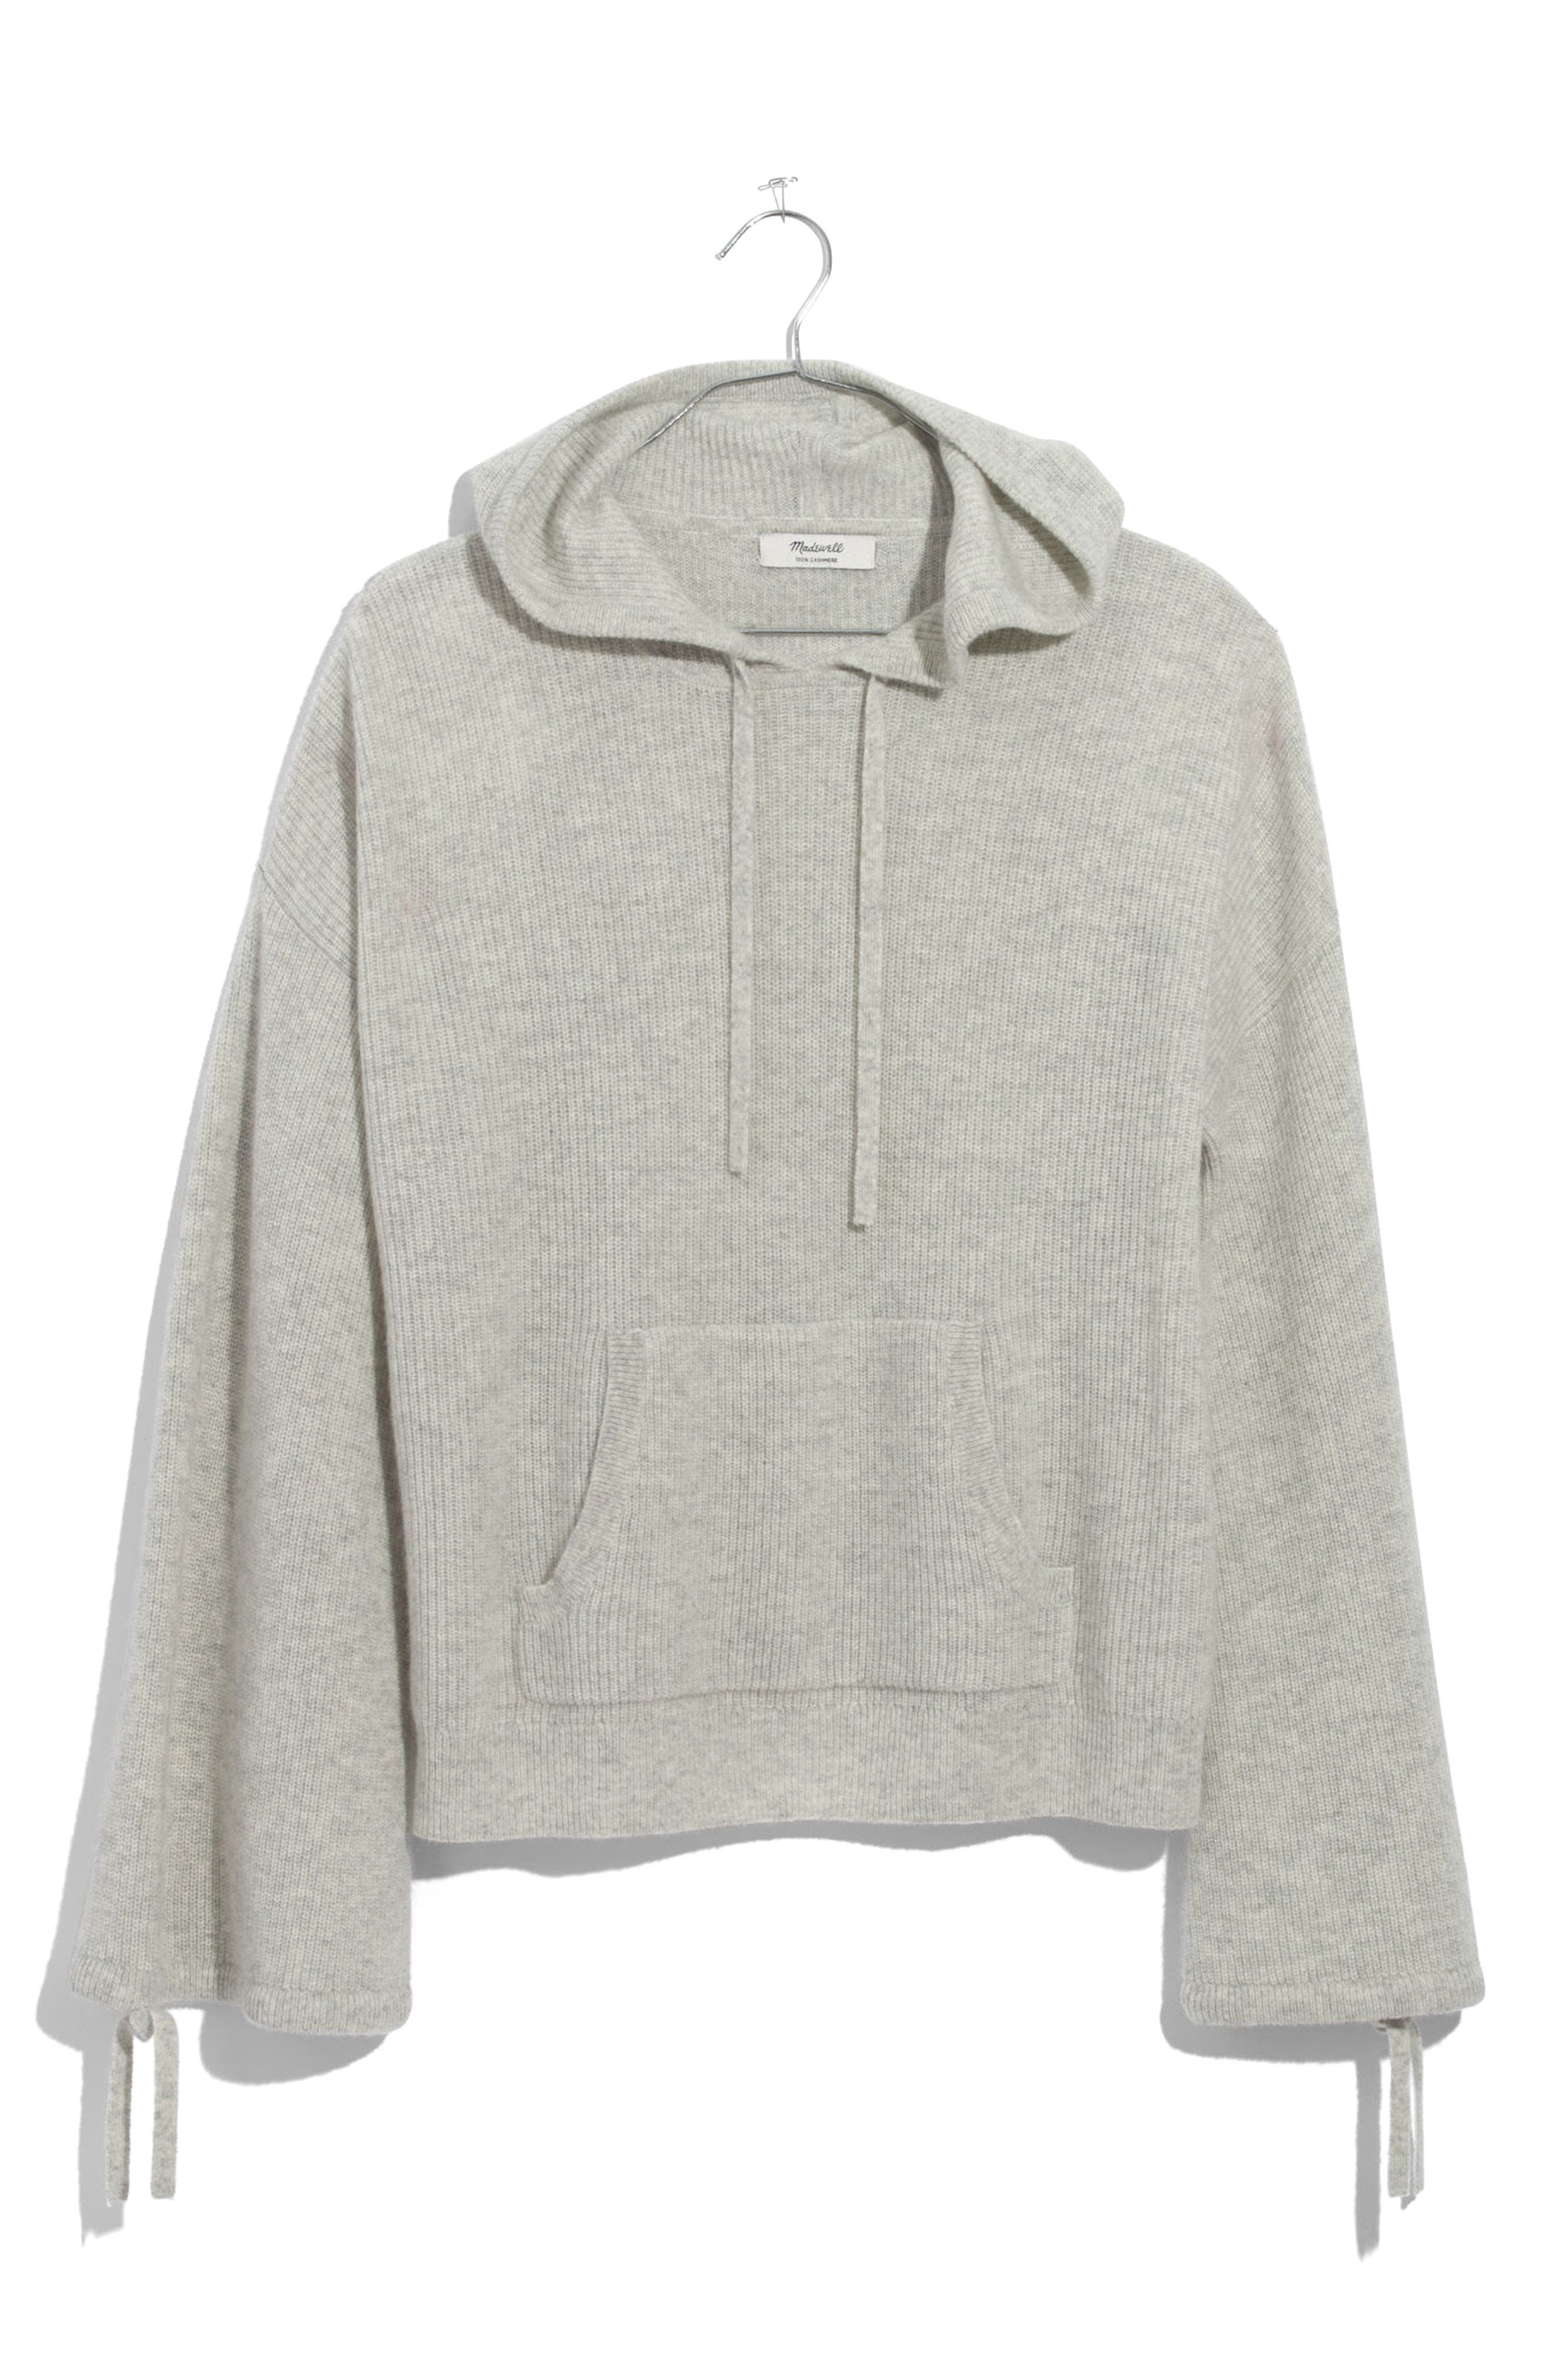 Cashmere Hooded Sweater,                             Alternate thumbnail 3, color,                             020